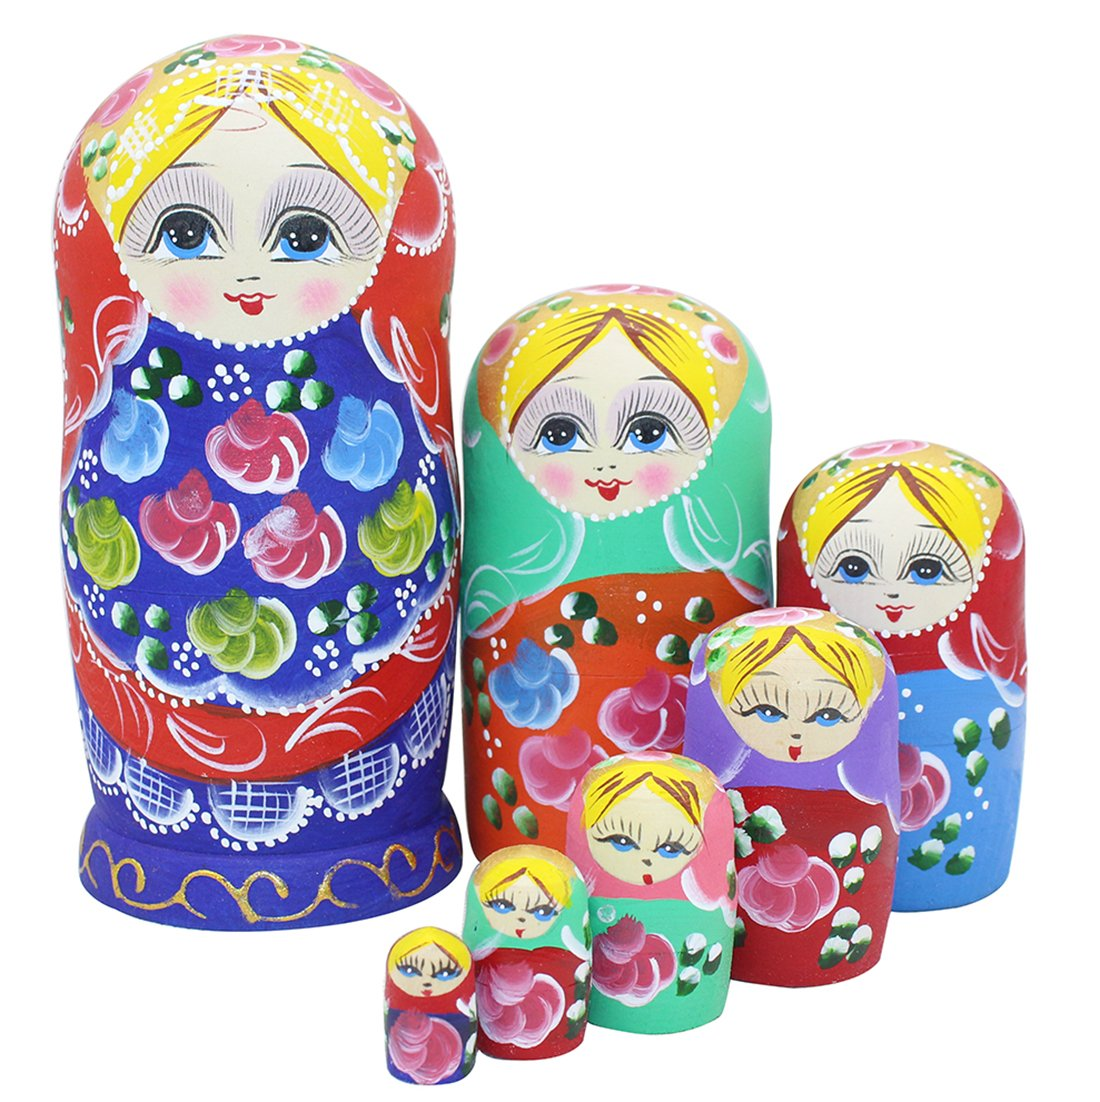 Set of 7 Pieces Wooden Handmade Traditional Blue Red Colorful Flower Russian Nesting Stacking Dolls Matryoshka Kids Children Gifts Toy for Home Desk Room Party Decoration